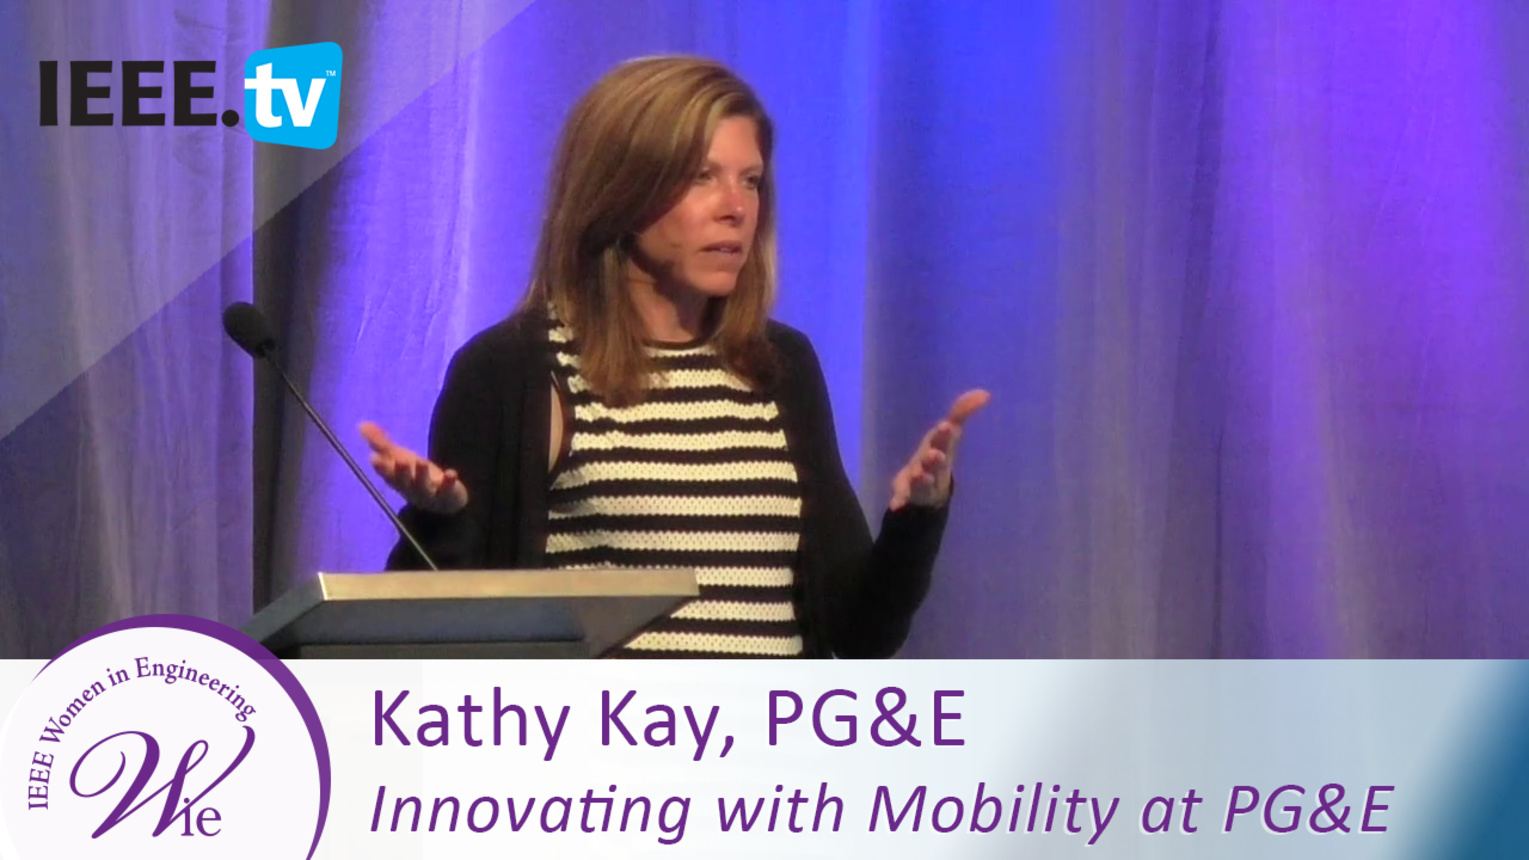 Kathy Kay talks Innovating Mobility at PG&E - 2016 Women in Engineering Conference